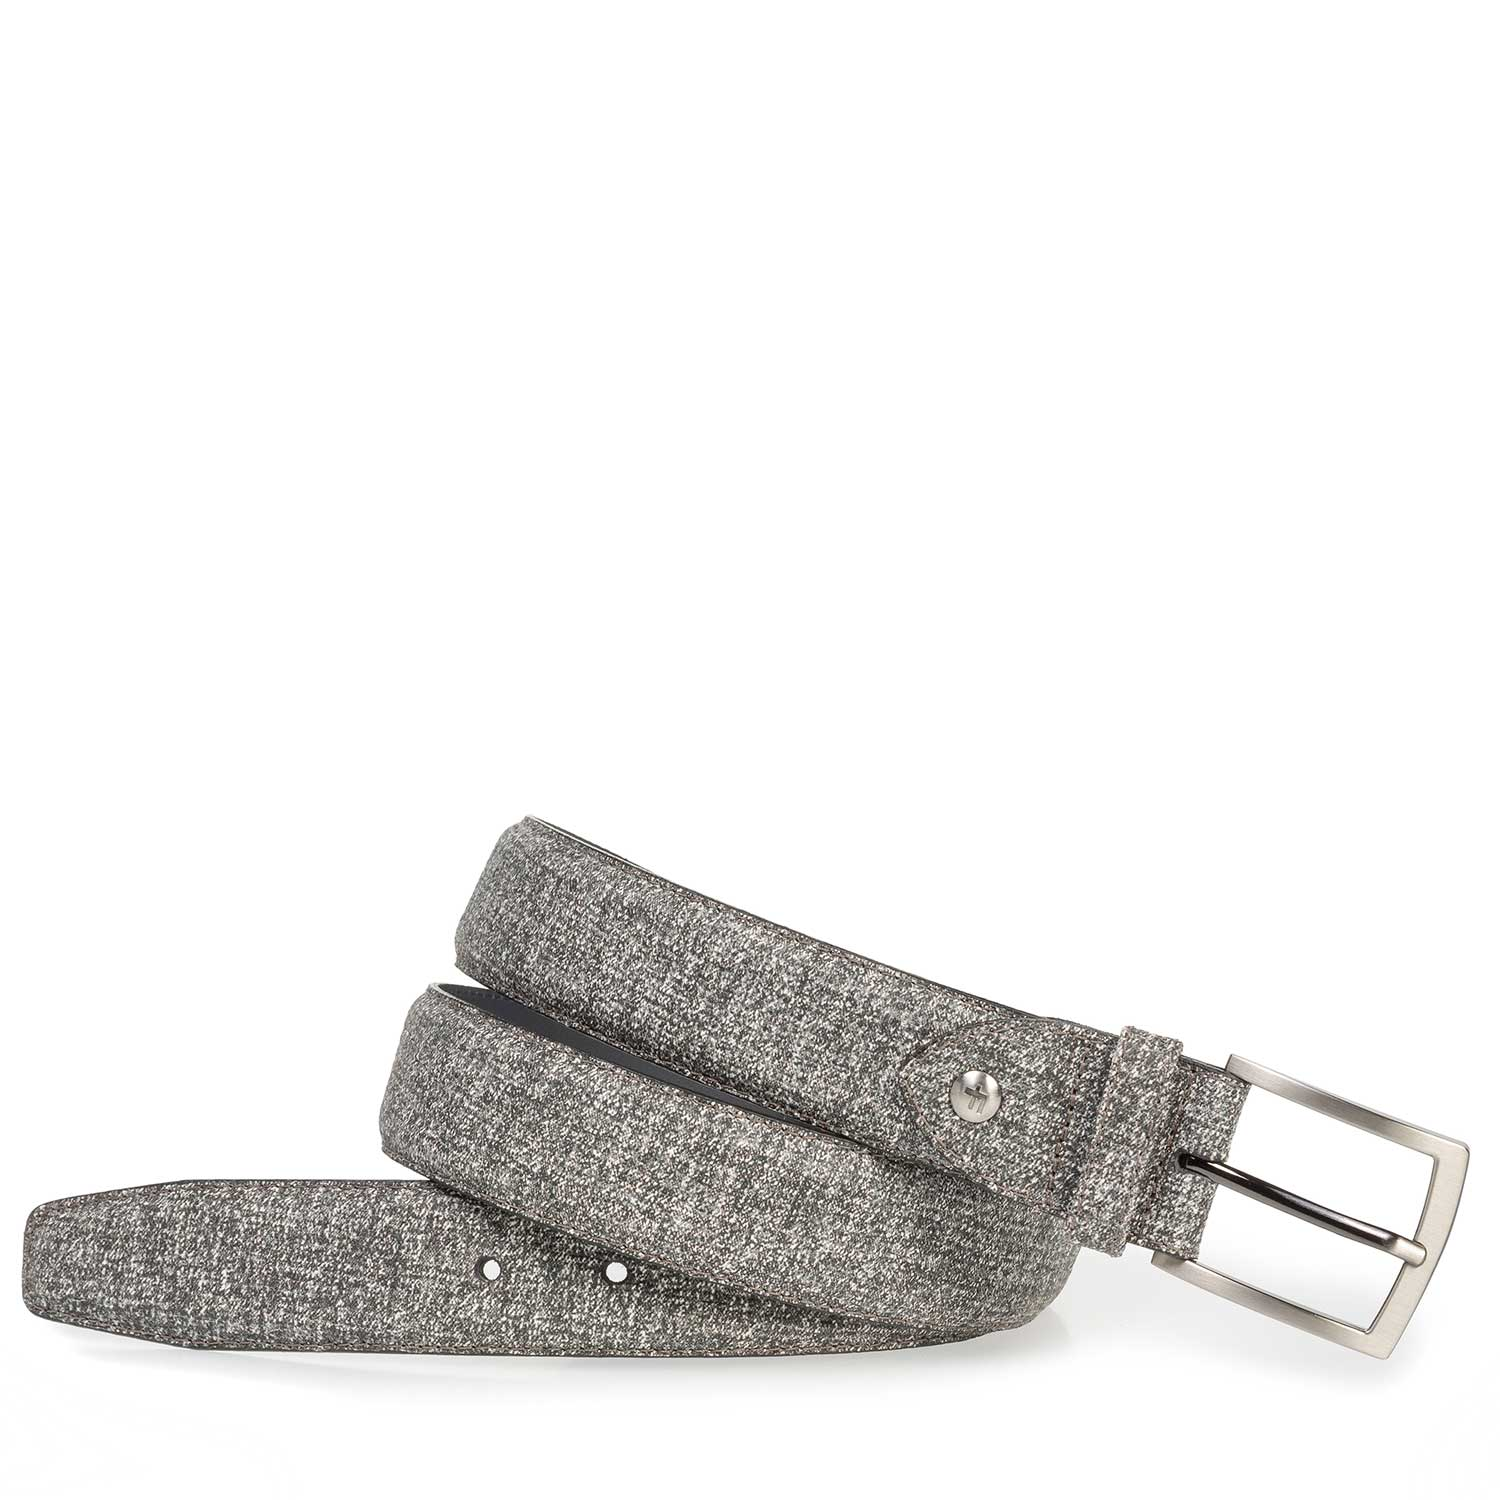 75201/52 - Grey suede leather belt with print